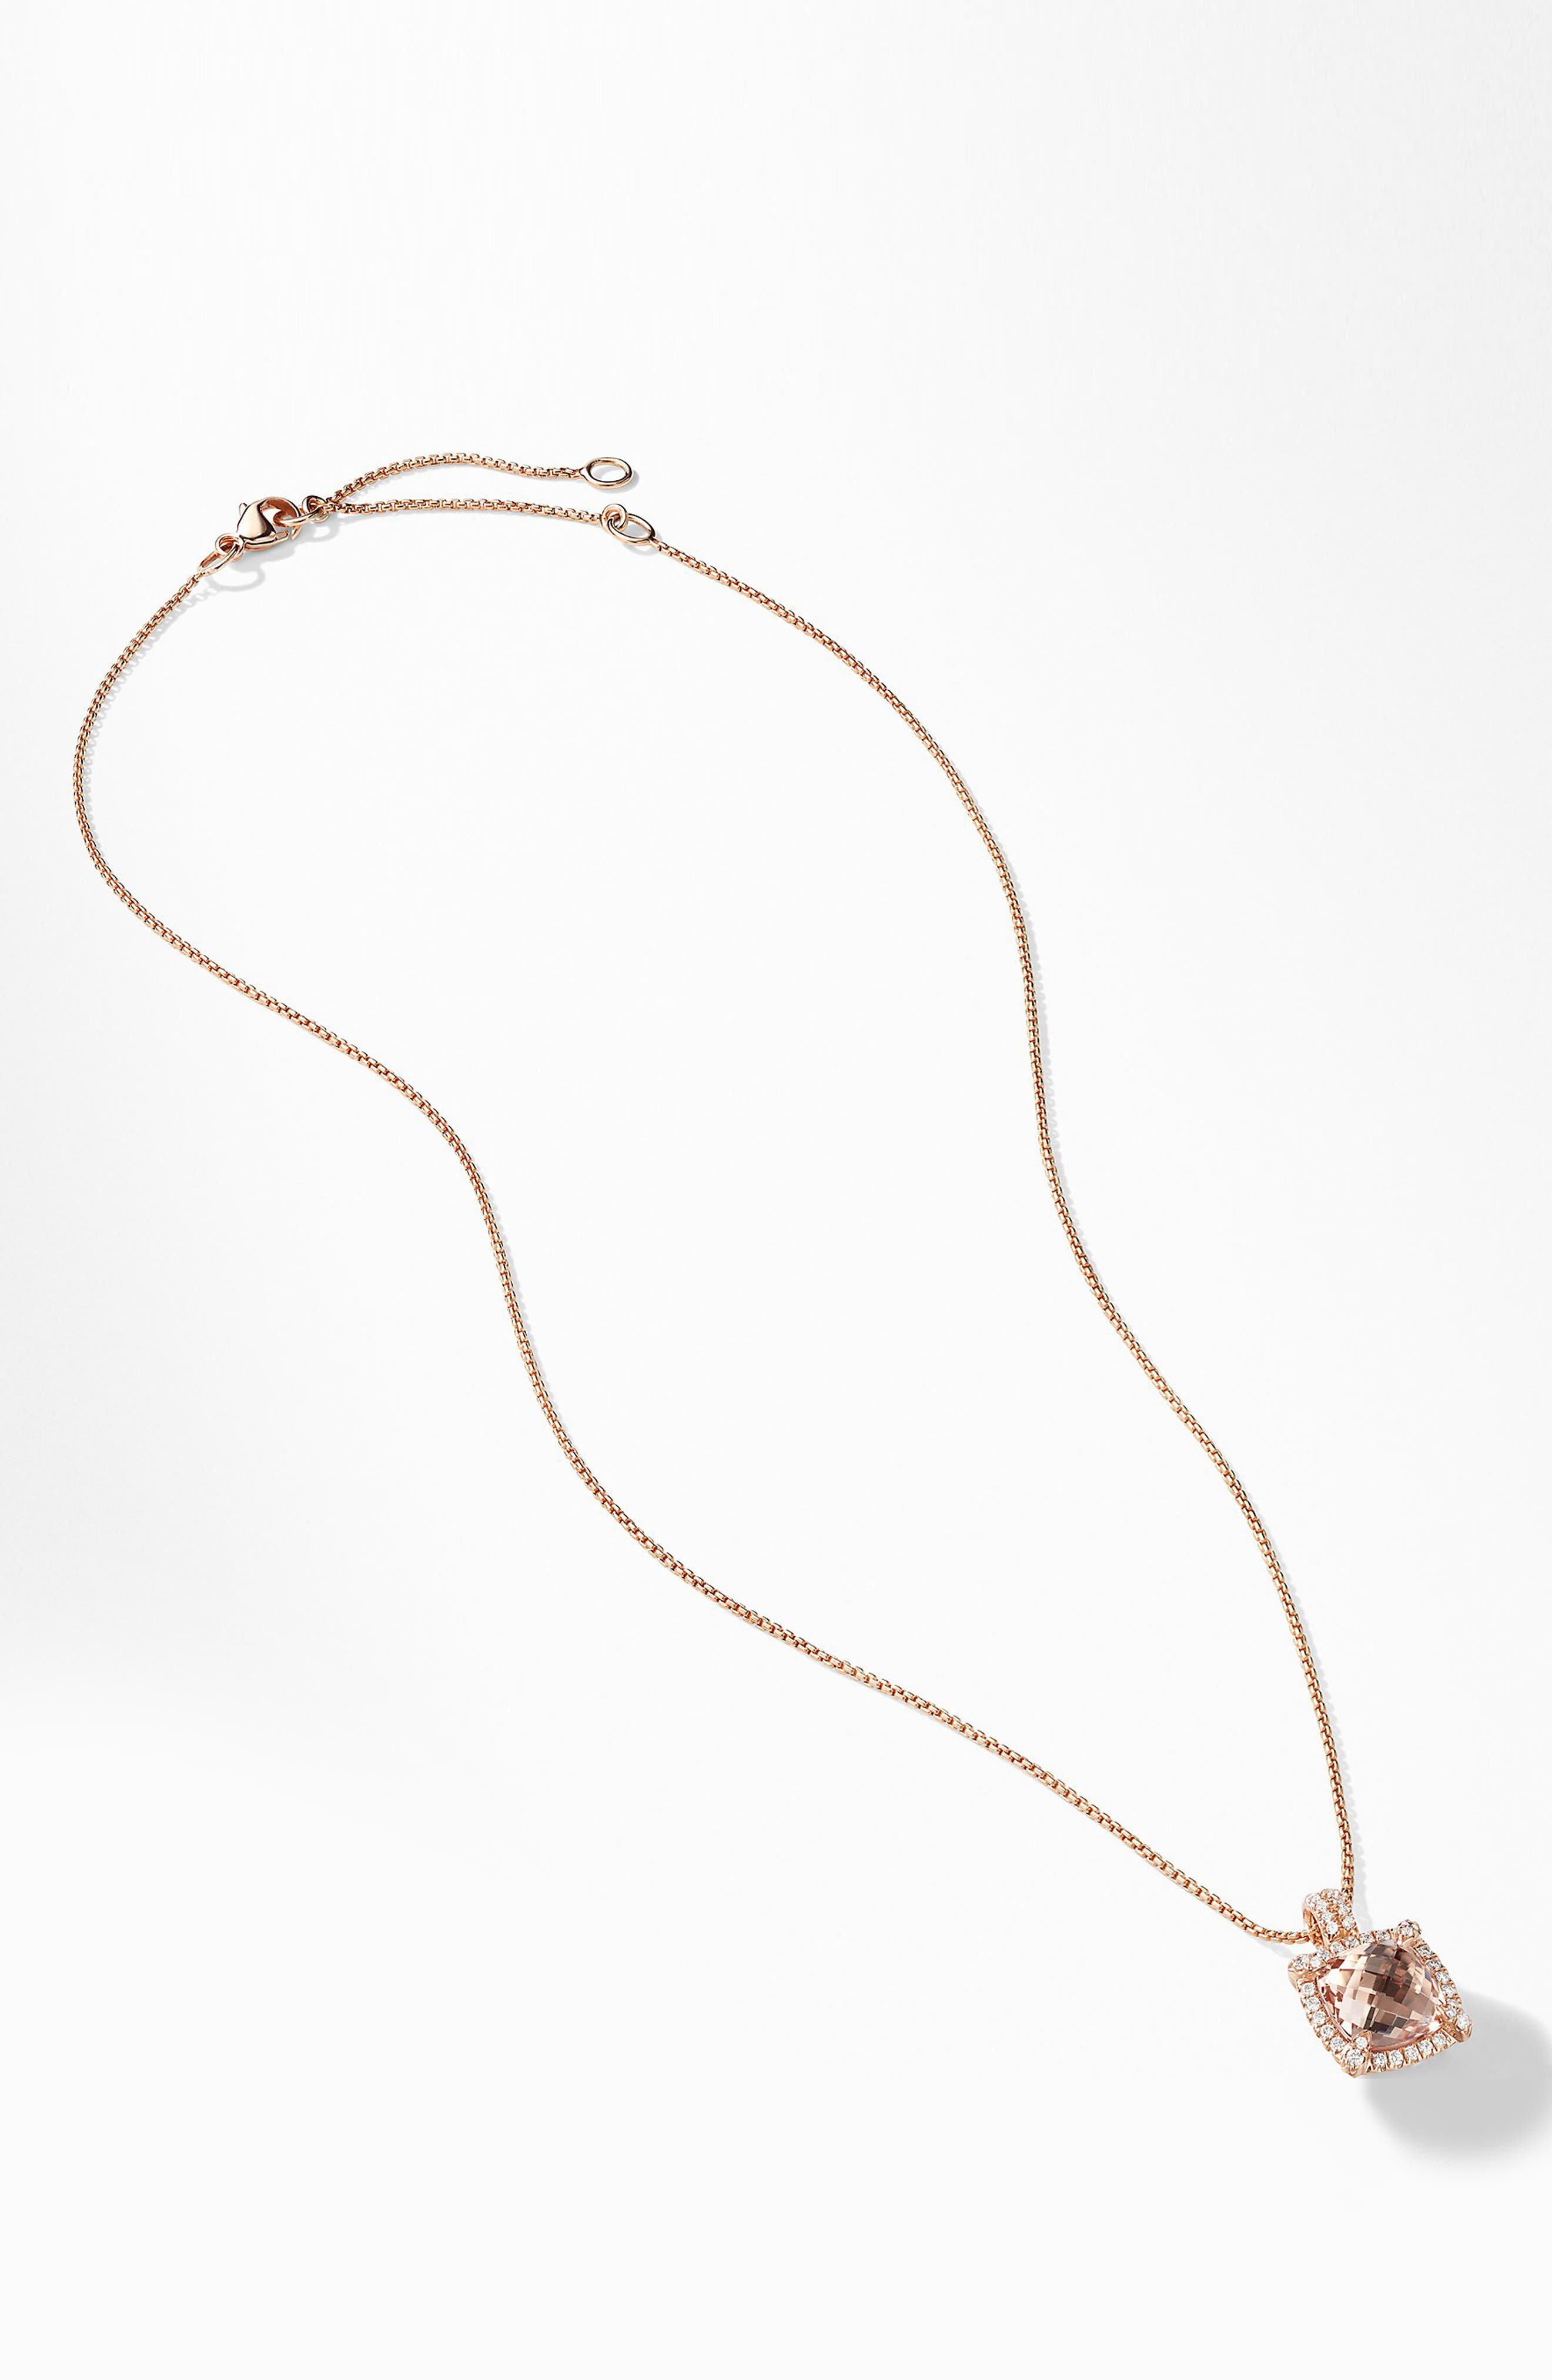 Châtelaine Pavé Bezel Pendant Necklace with Morganite and Diamonds in 18K Rose Gold,                             Alternate thumbnail 2, color,                             ROSE GOLD/ DIAMOND/ MORGANITE